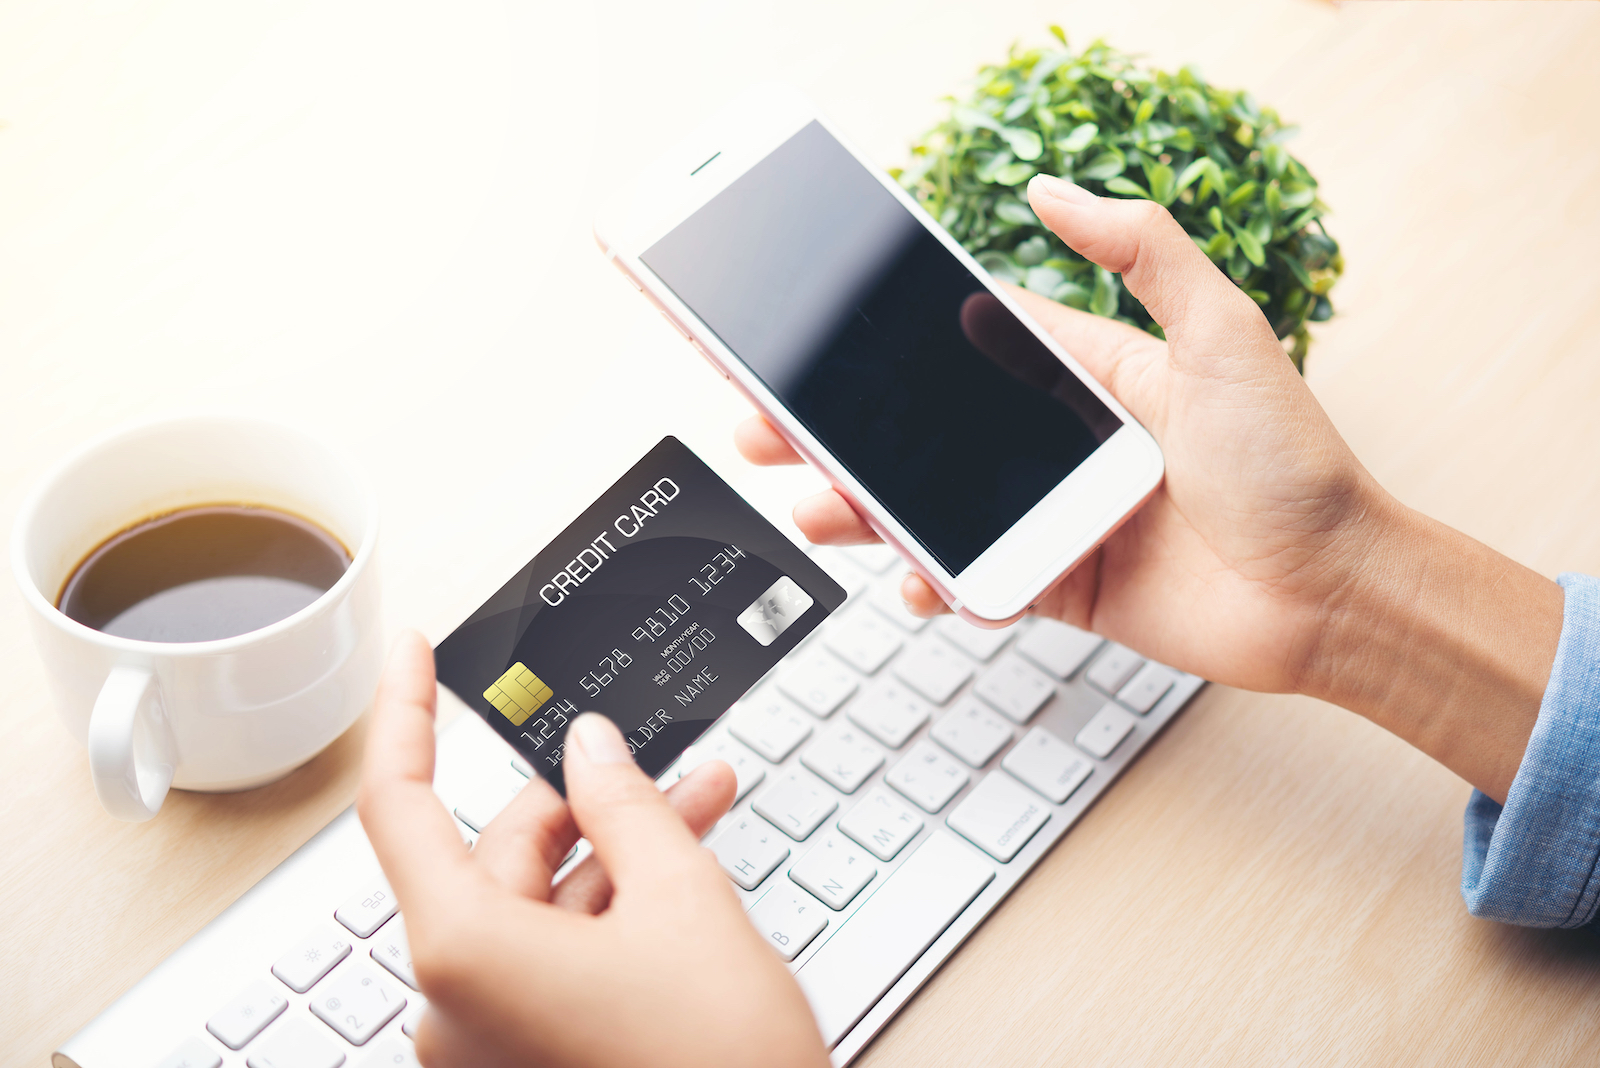 Mobile Phone and Debit Card | Ecommerce Website Builder: Easy Guide To Launching A Site